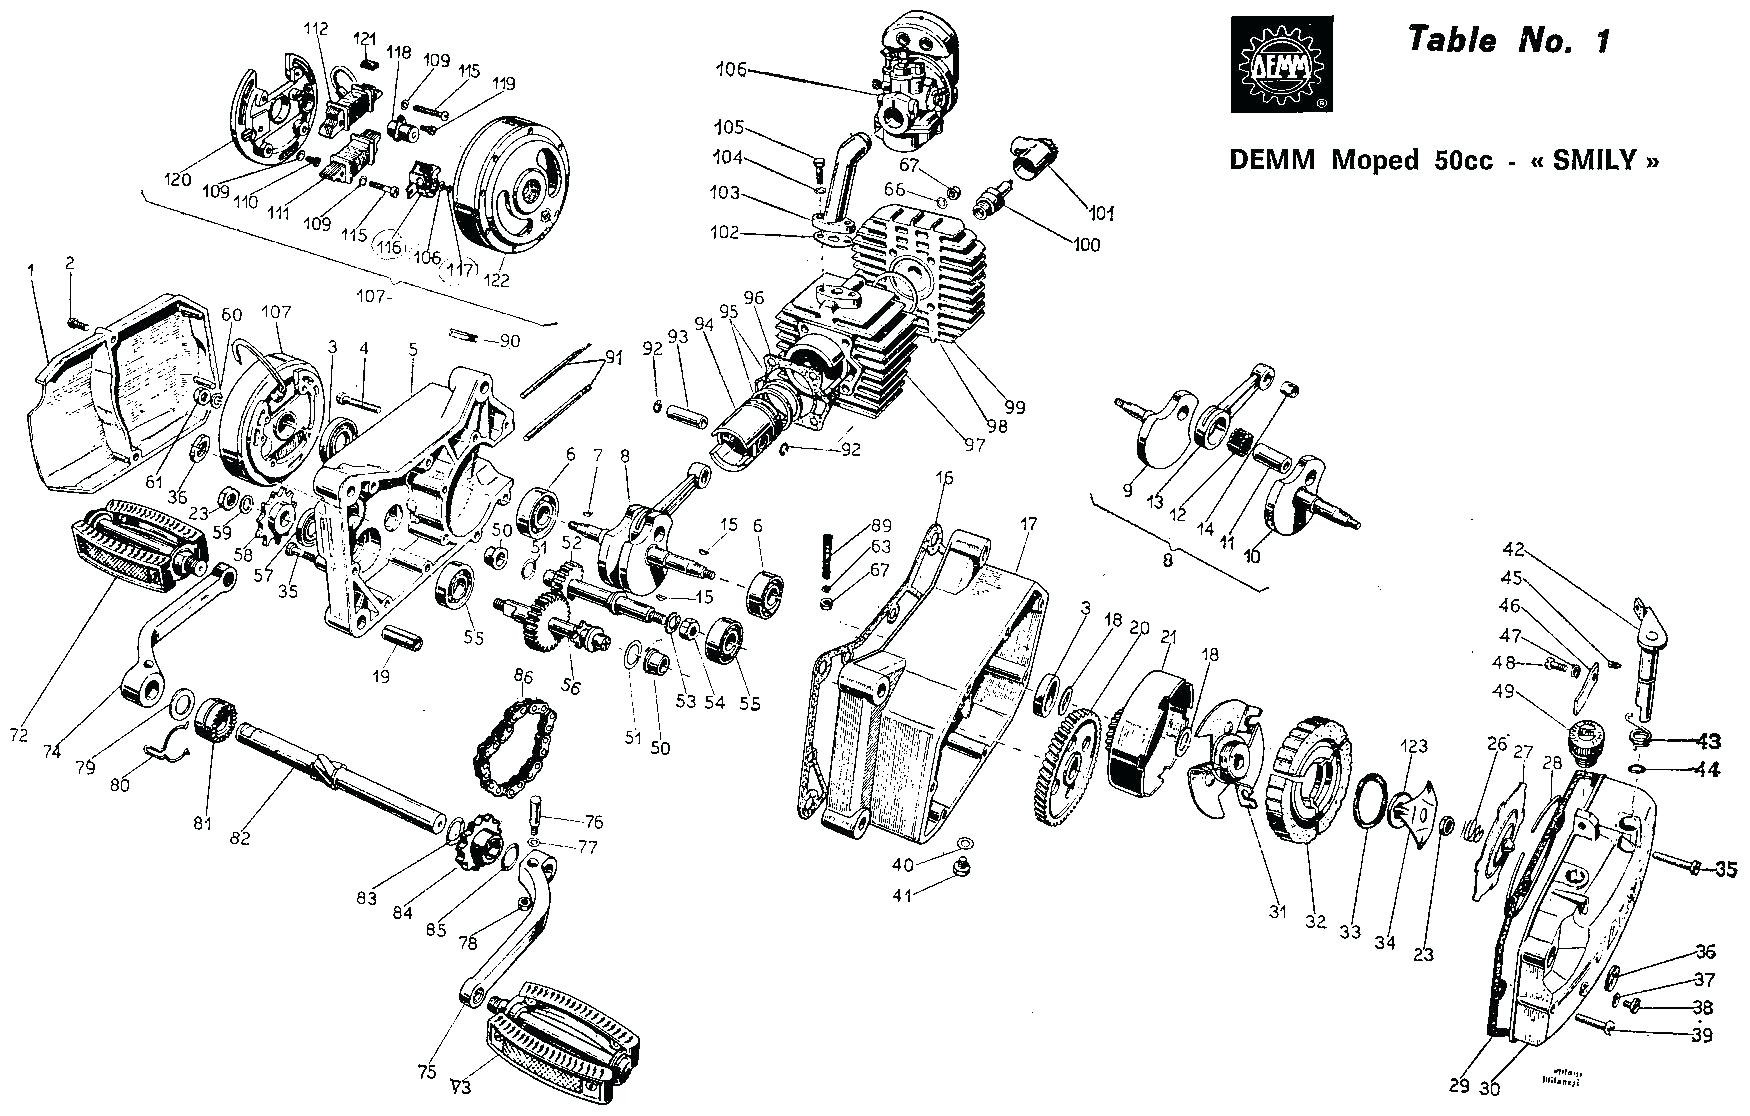 Tomos A55 Engine Diagram Moped Engine Diagram tomos Exercise assembly Wiring Exhaust Pipe Of Tomos A55 Engine Diagram